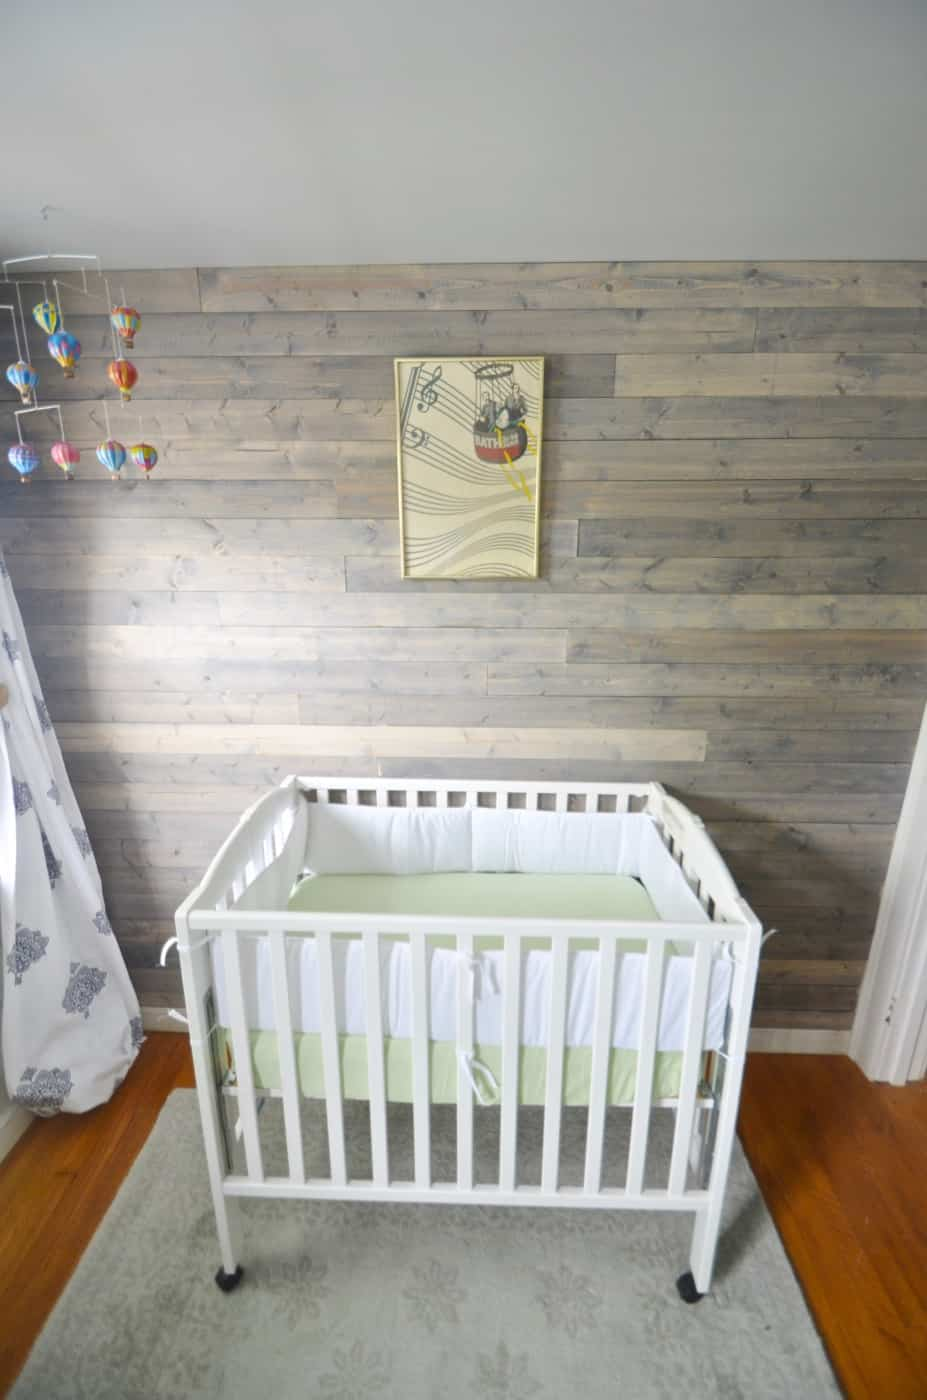 Designing a neutral nursery with pattern and texture.